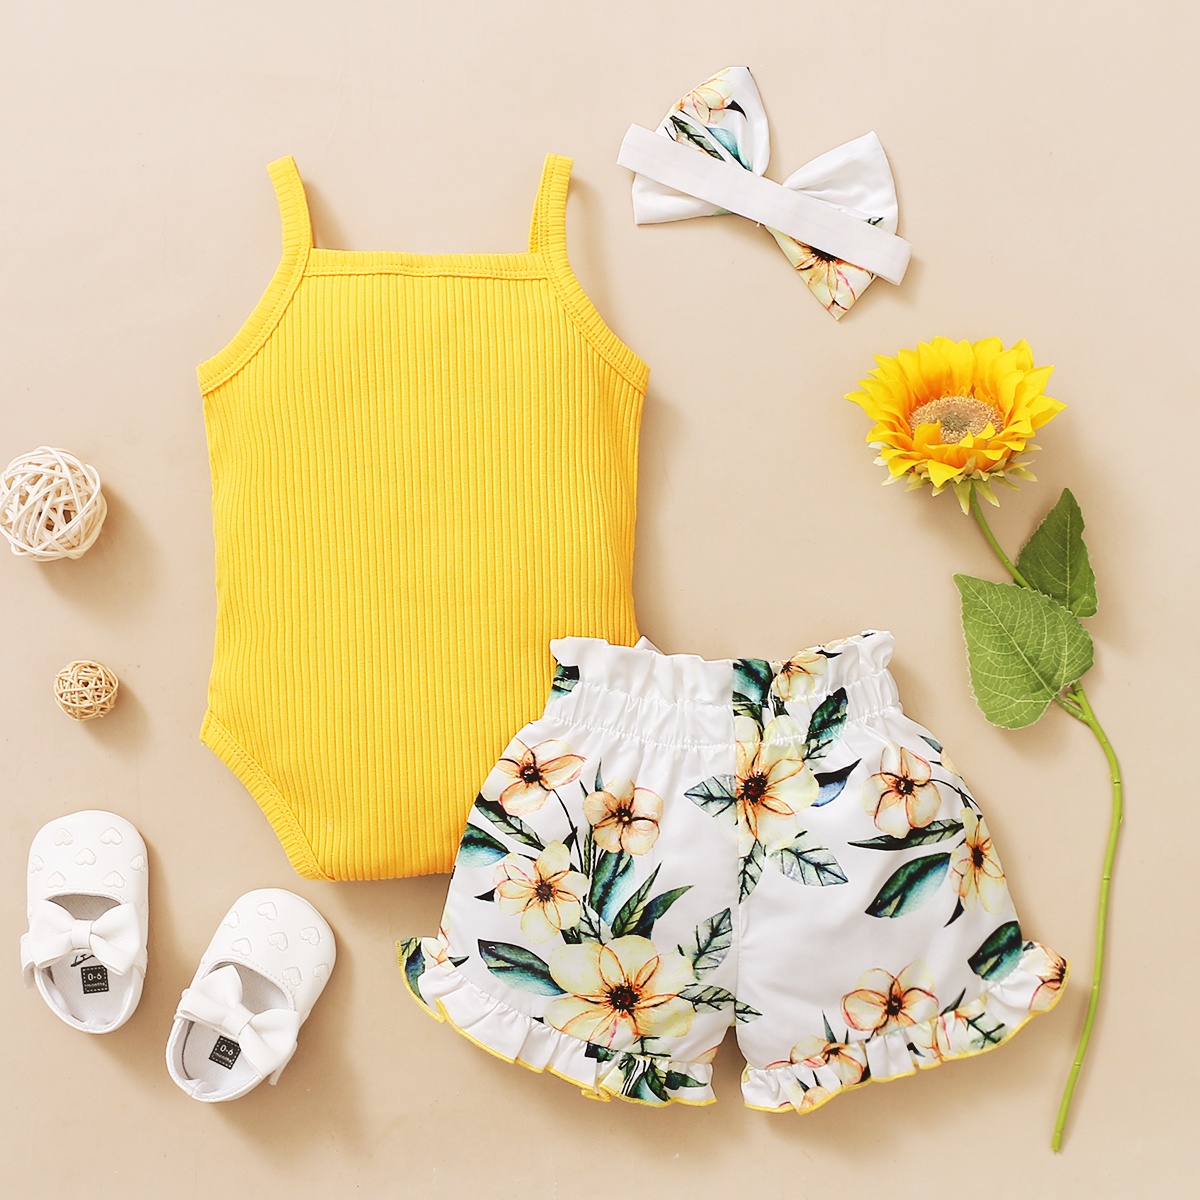 3Pcs Newborn Baby Girls Summer Clothes Cute Beach Boho Strap Ruffle Romper Floral Shorts Toddler Outfit Baby Girls Clothing 3